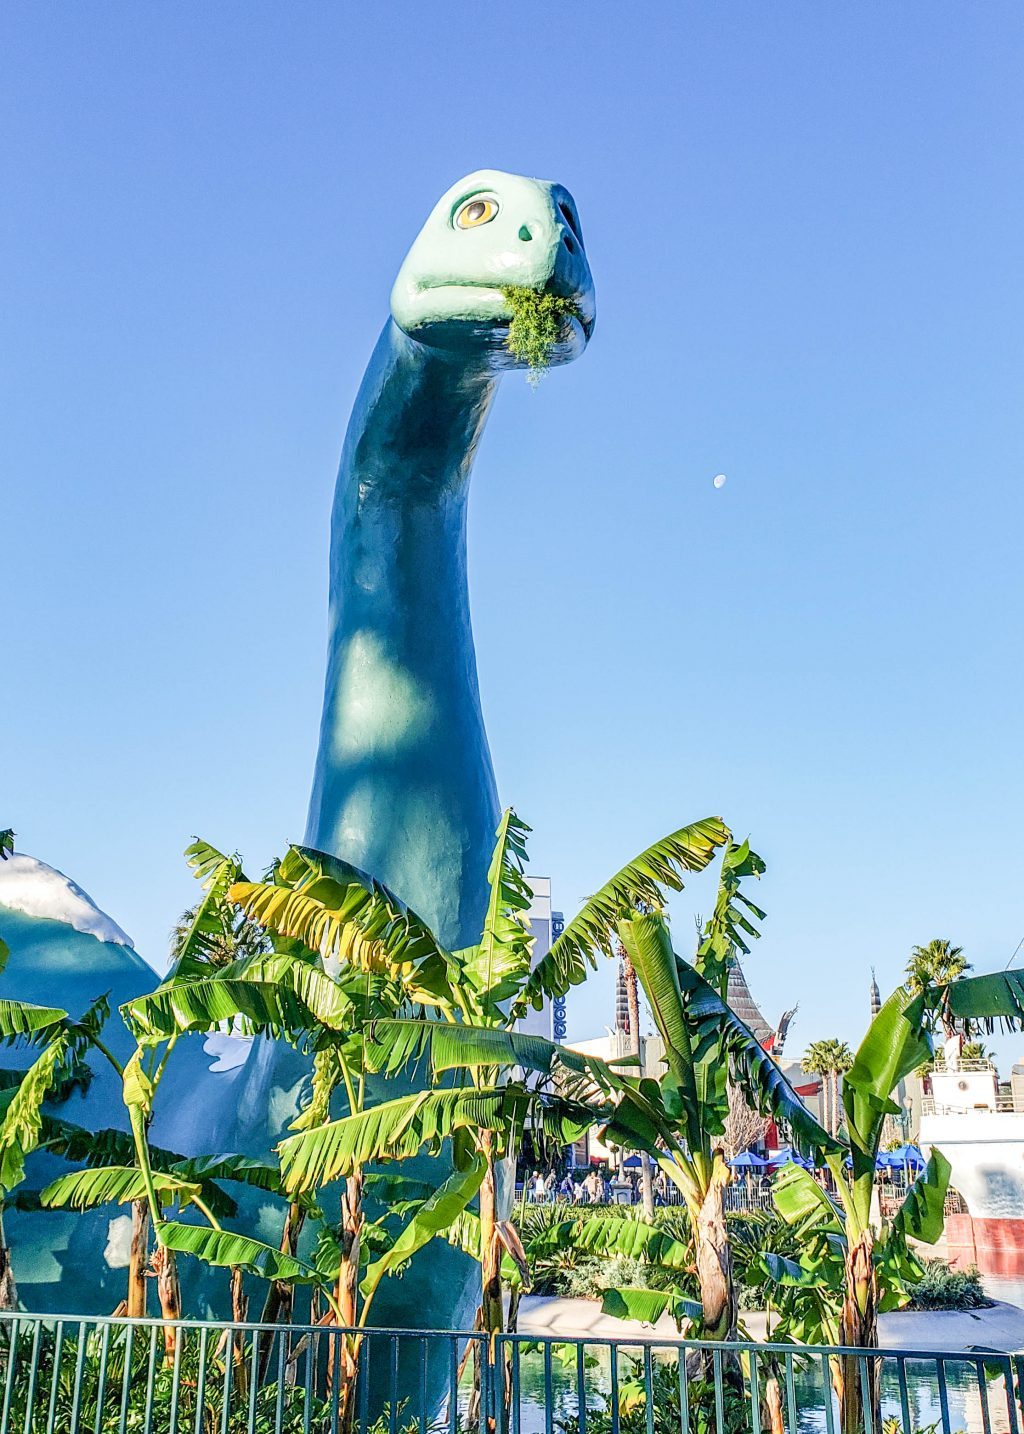 A large green dinosaur rises among the palm trees, while eating some kind of greenery